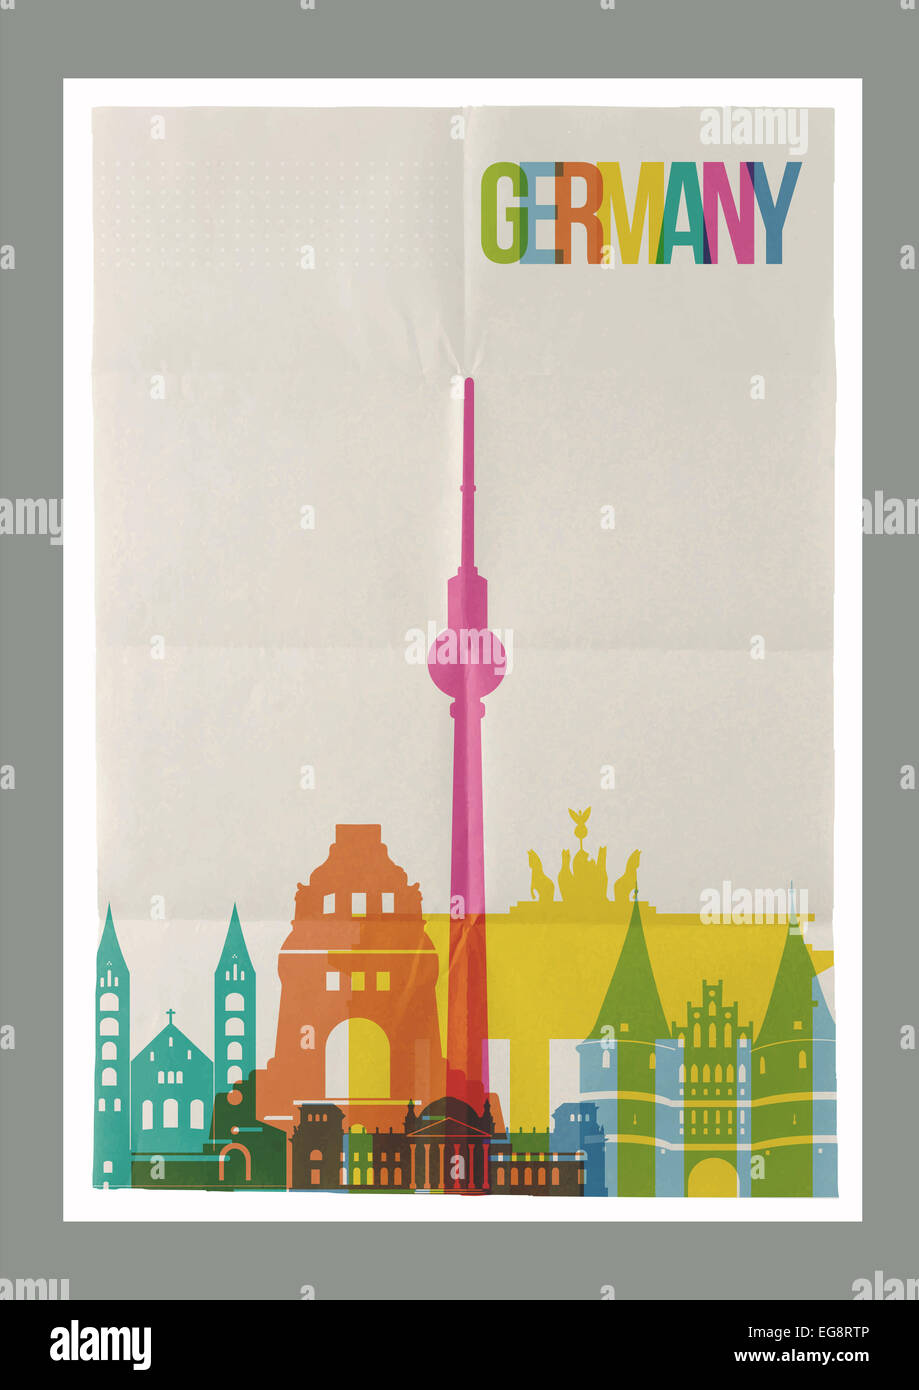 Poster design background - Stock Photo Travel Germany Famous Landmarks Skyline On Vintage Paper Sheet Poster Design Background Vector Organized In Layers For Easy Cre